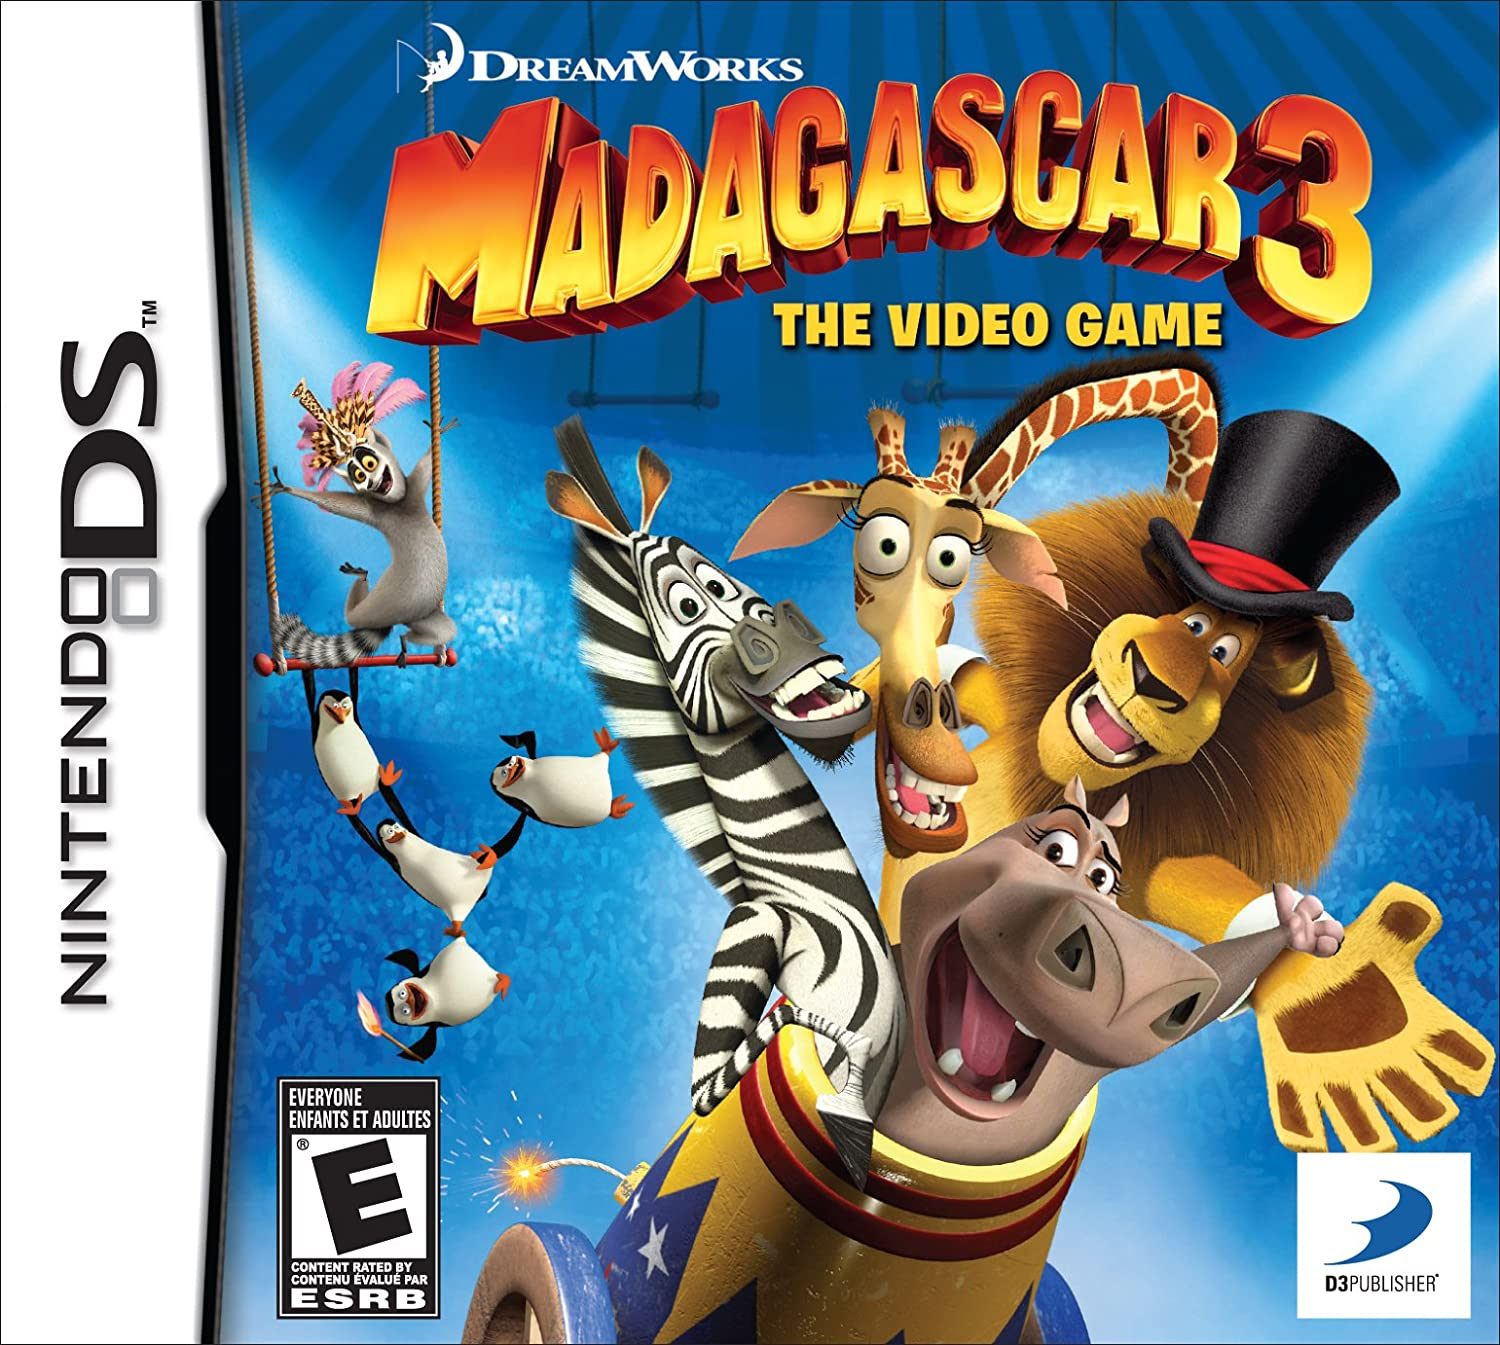 Amazoncom Madagascar 3 The Video Game Xbox 360 D3 Publisher